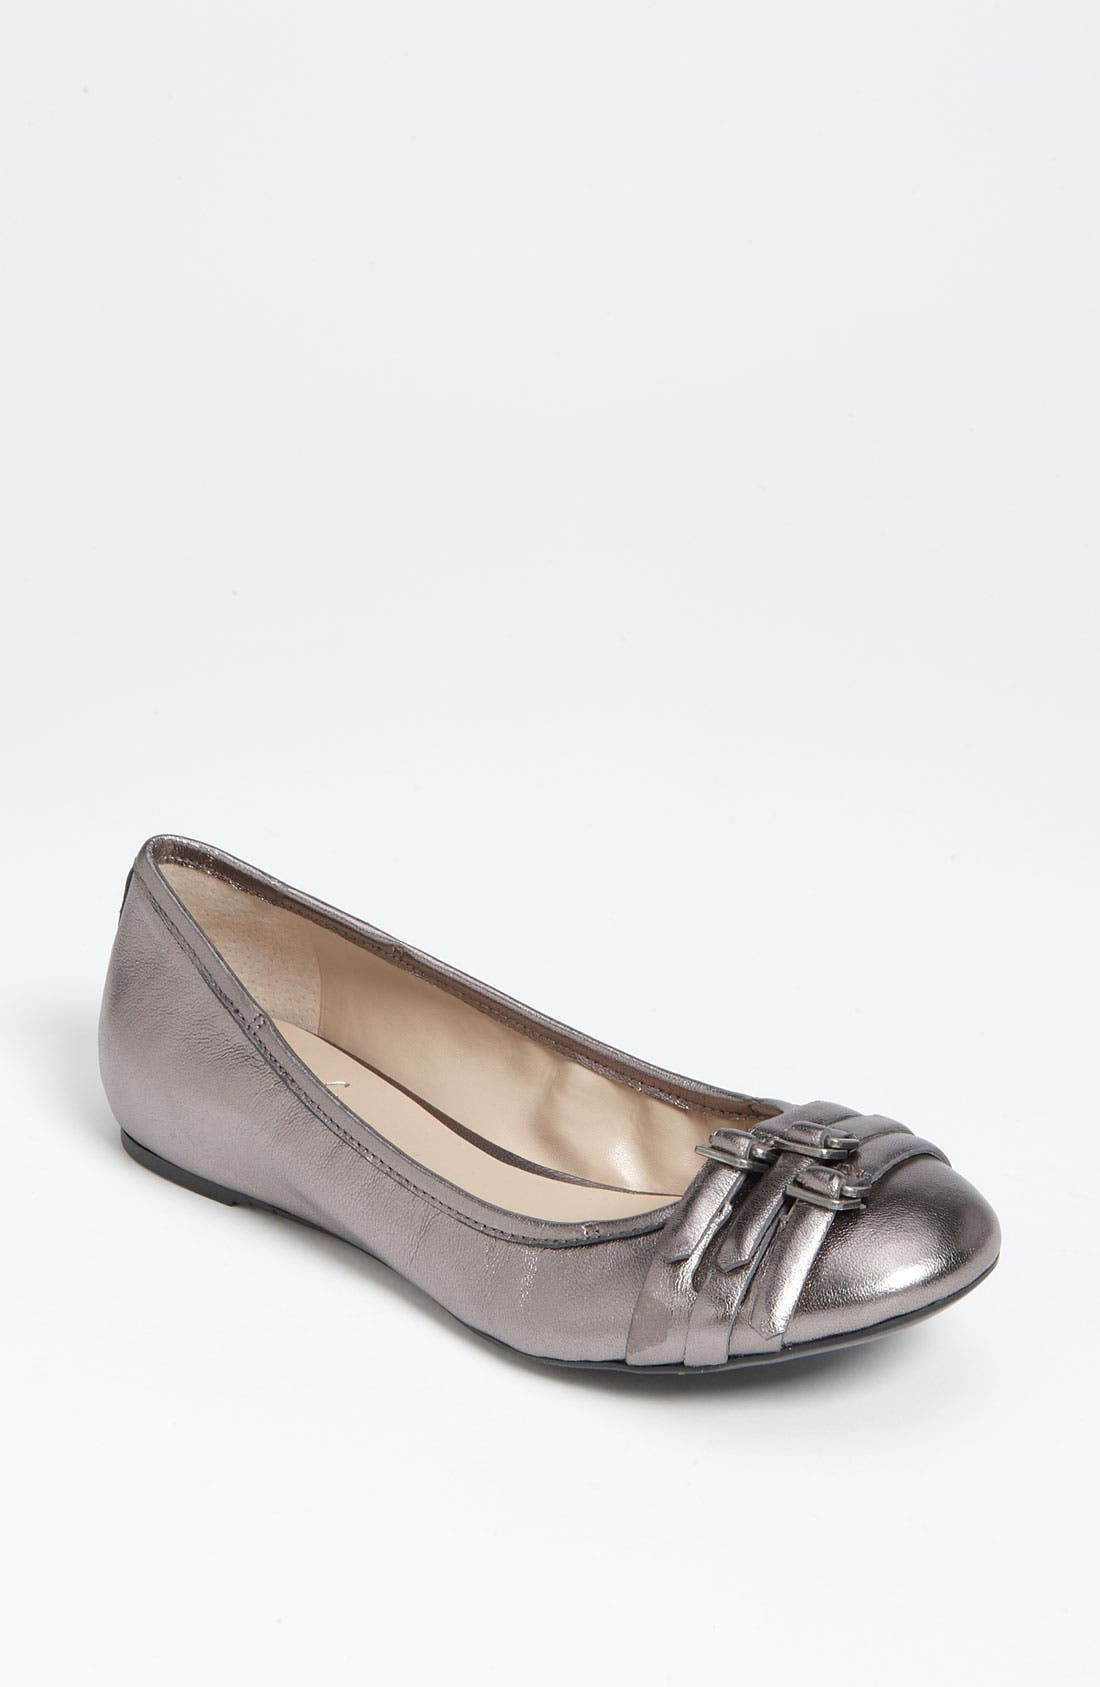 Alternate Image 1 Selected - Franco Sarto 'Ariana' Flat